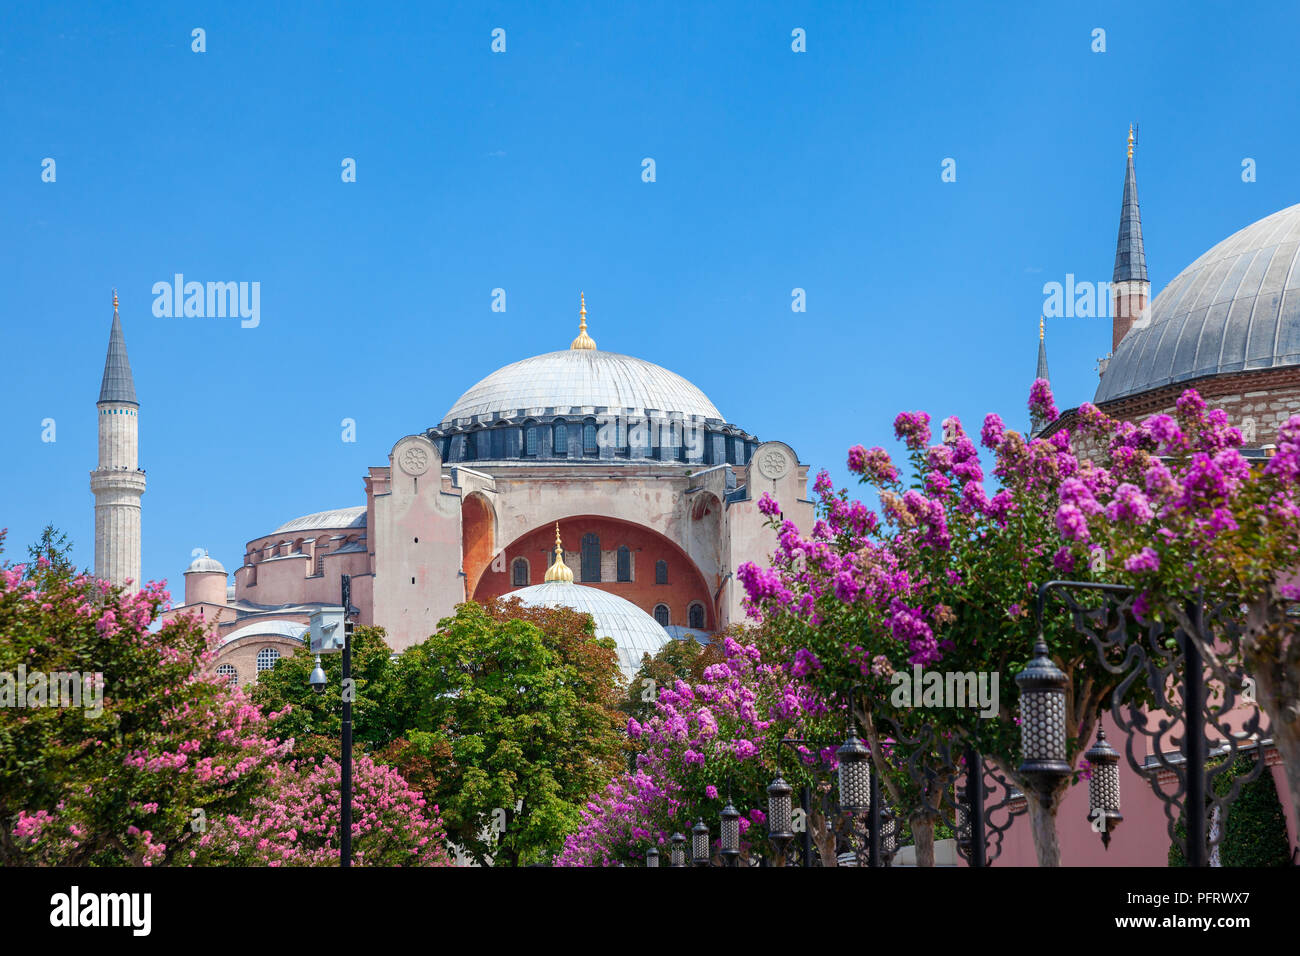 Daytime View Of The Worlds Famous Hagia Sophia Museum With